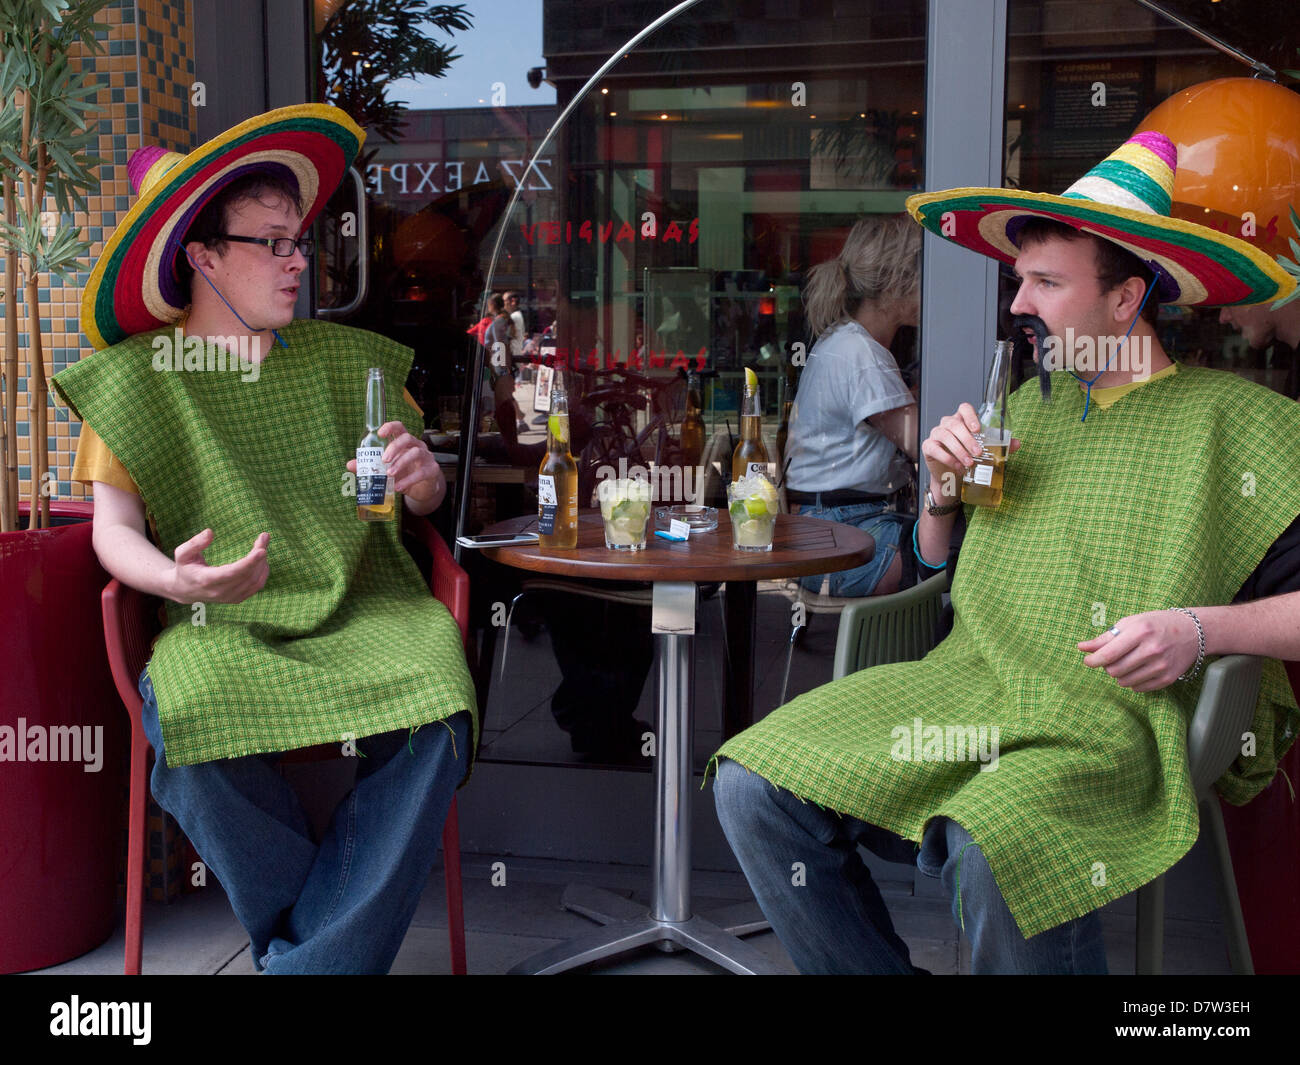 Men enjoying a beer, dressed as Mexicans - Stock Image